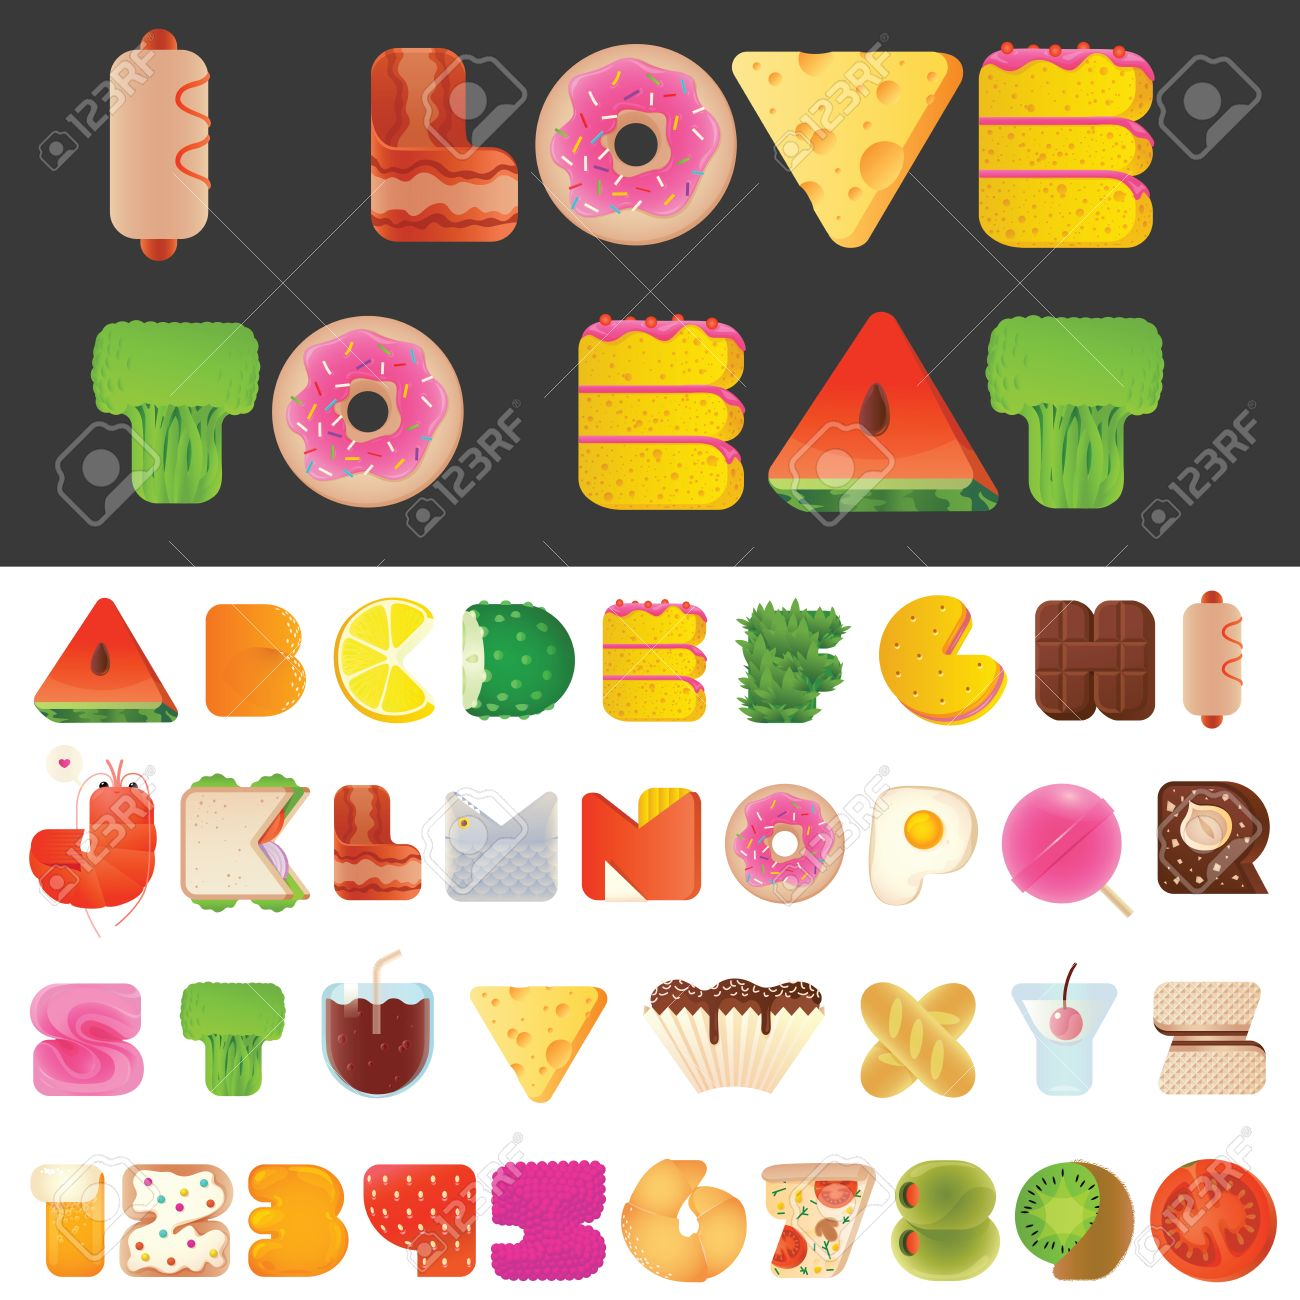 Stylish Yummy Funny Food Letters And Numbers Latin Font Snack A To Z Typeset Alphabet